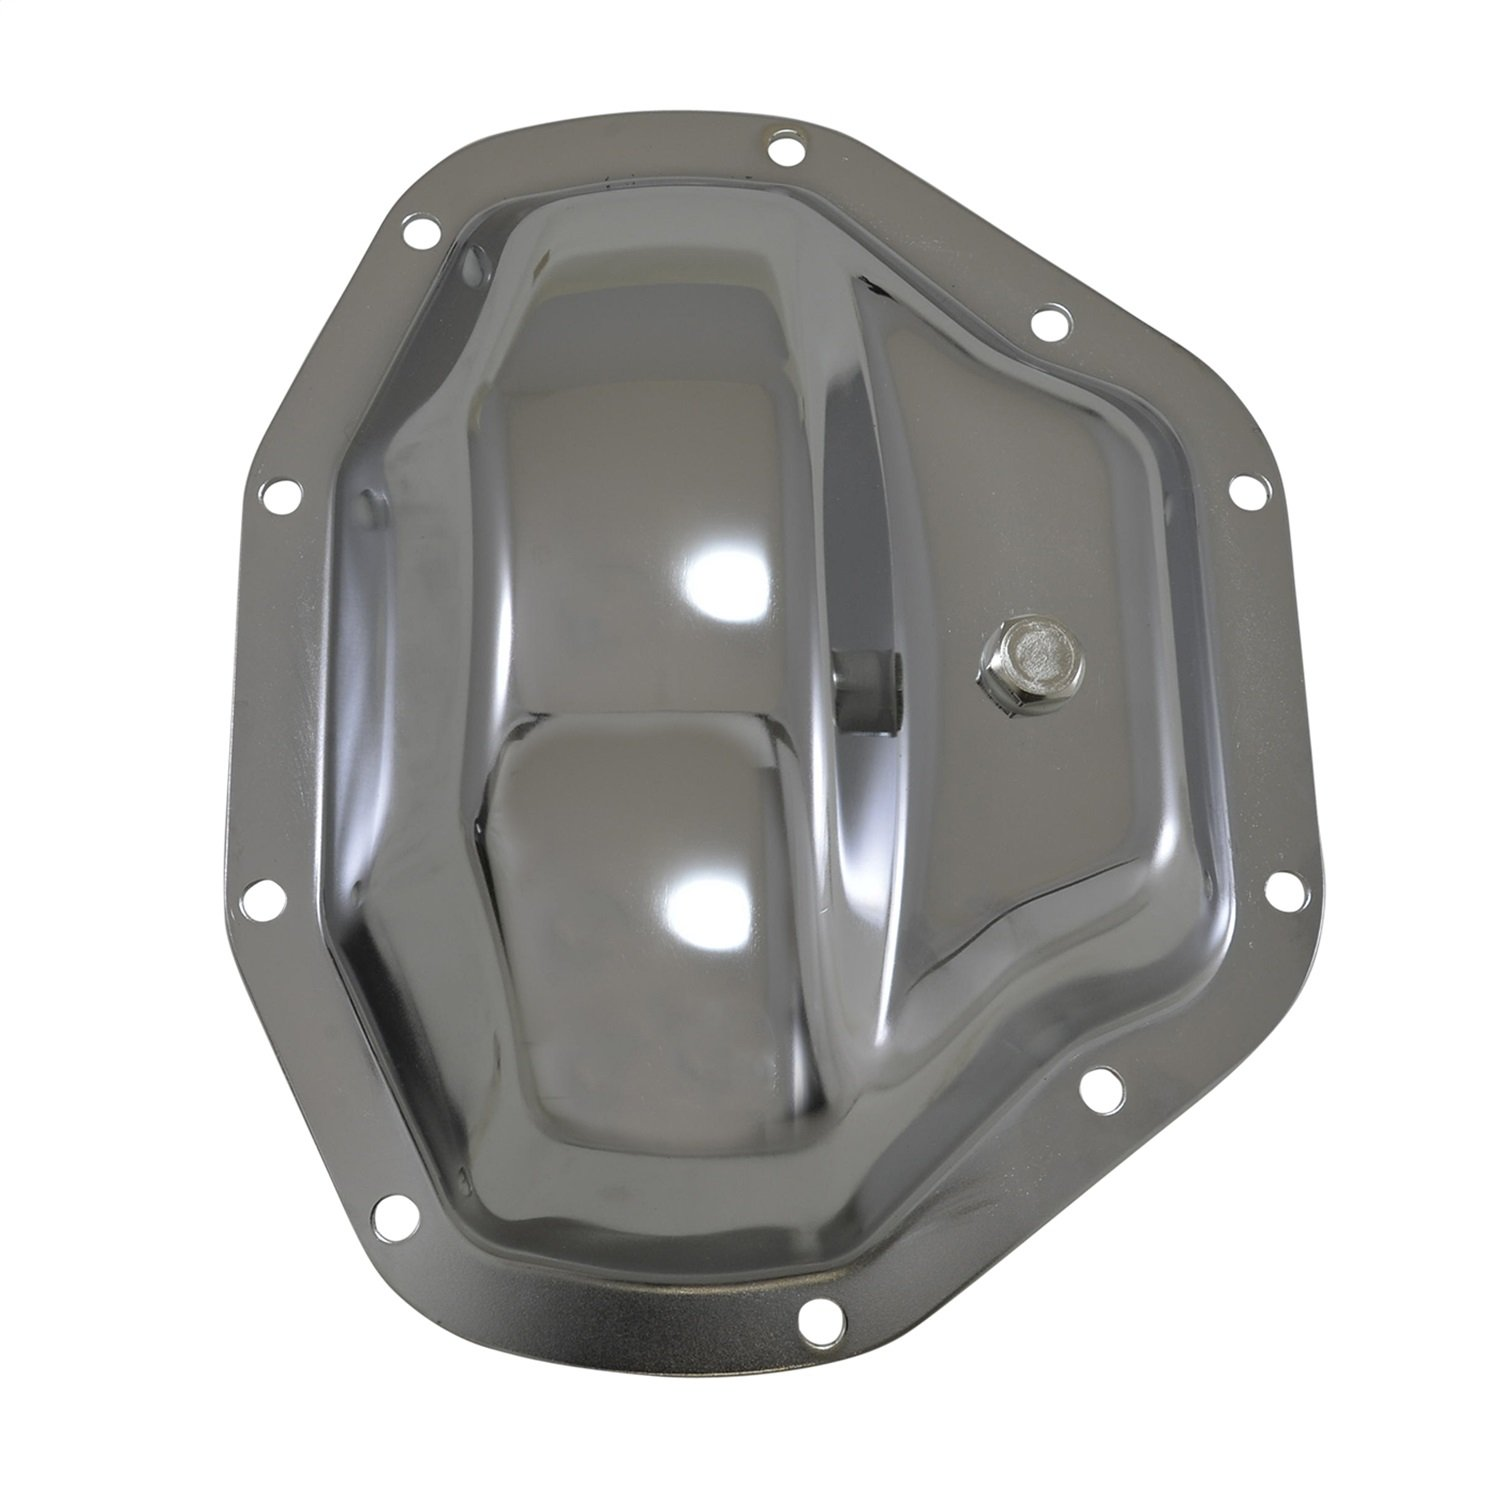 Yukon (YP C1-D80) Chrome Replacement Cover for Dana 80 Differential by Yukon Gear